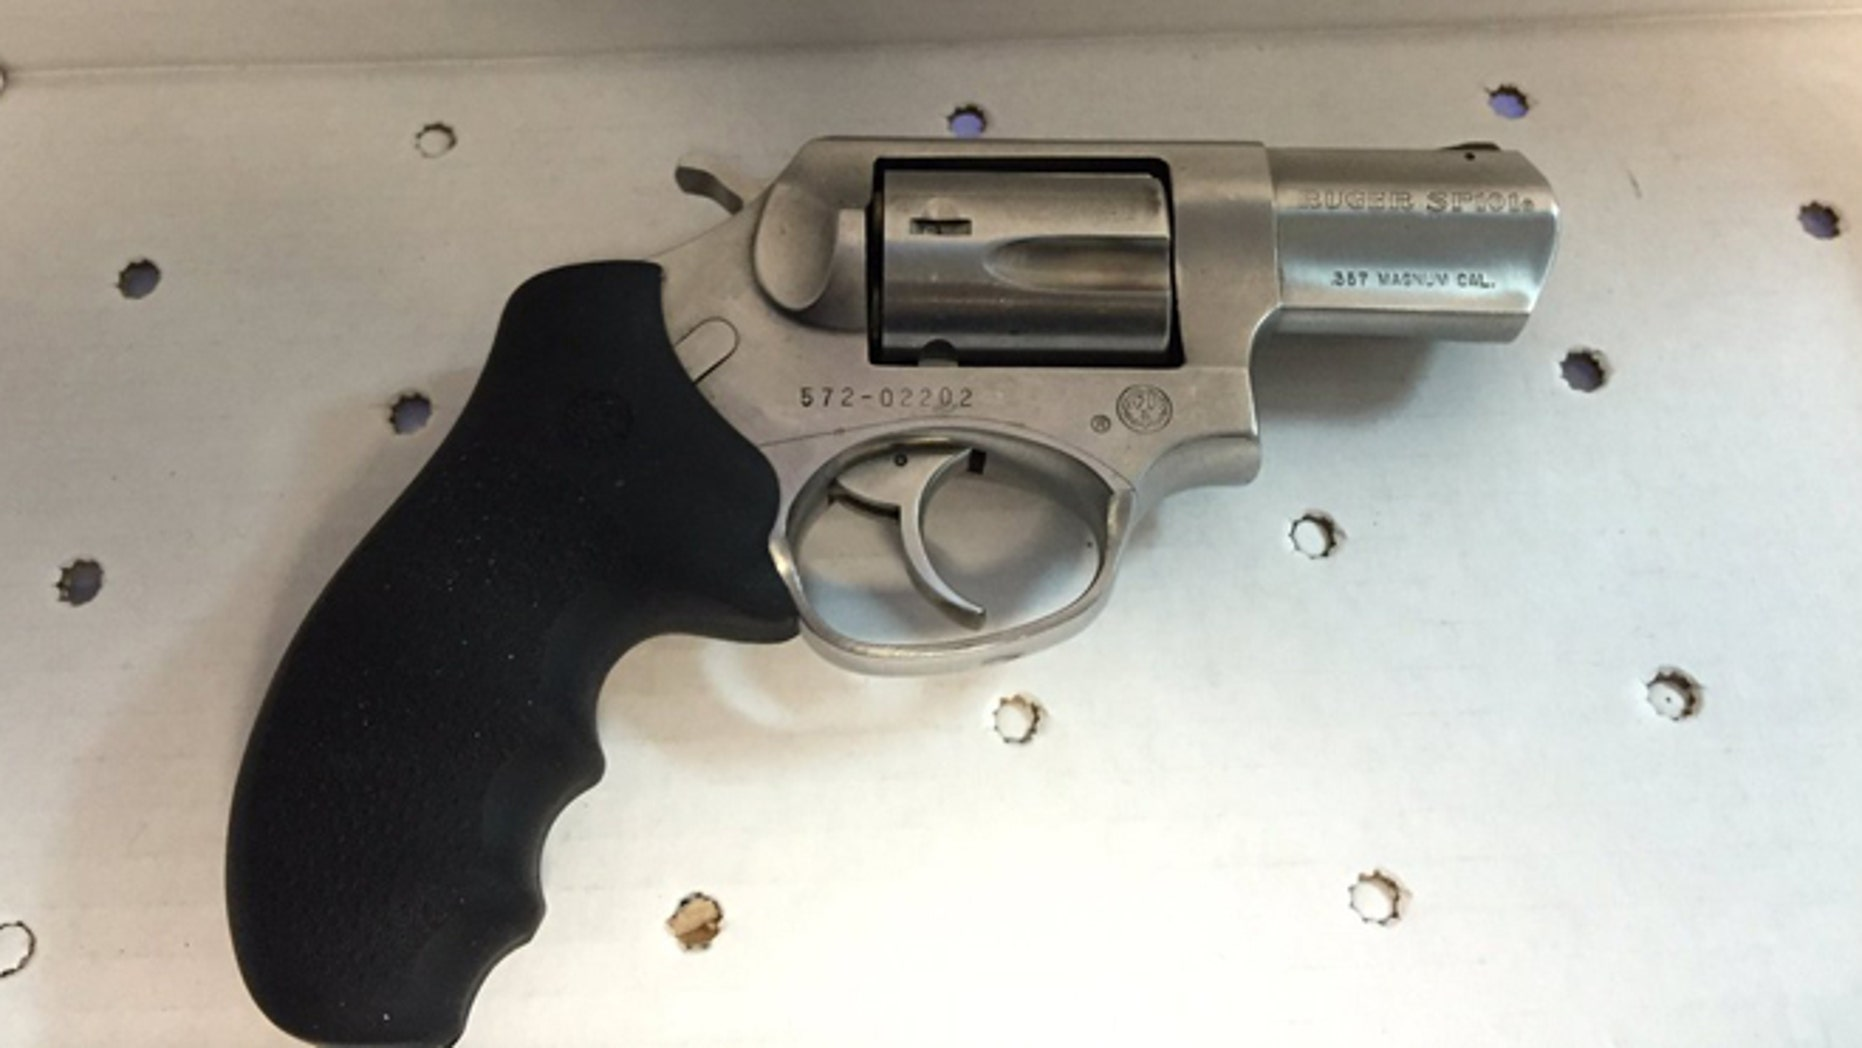 NYPD displays gun recovered after Brooklyn shootout, Saturday, Feb. 20, 2016. (NYPD)